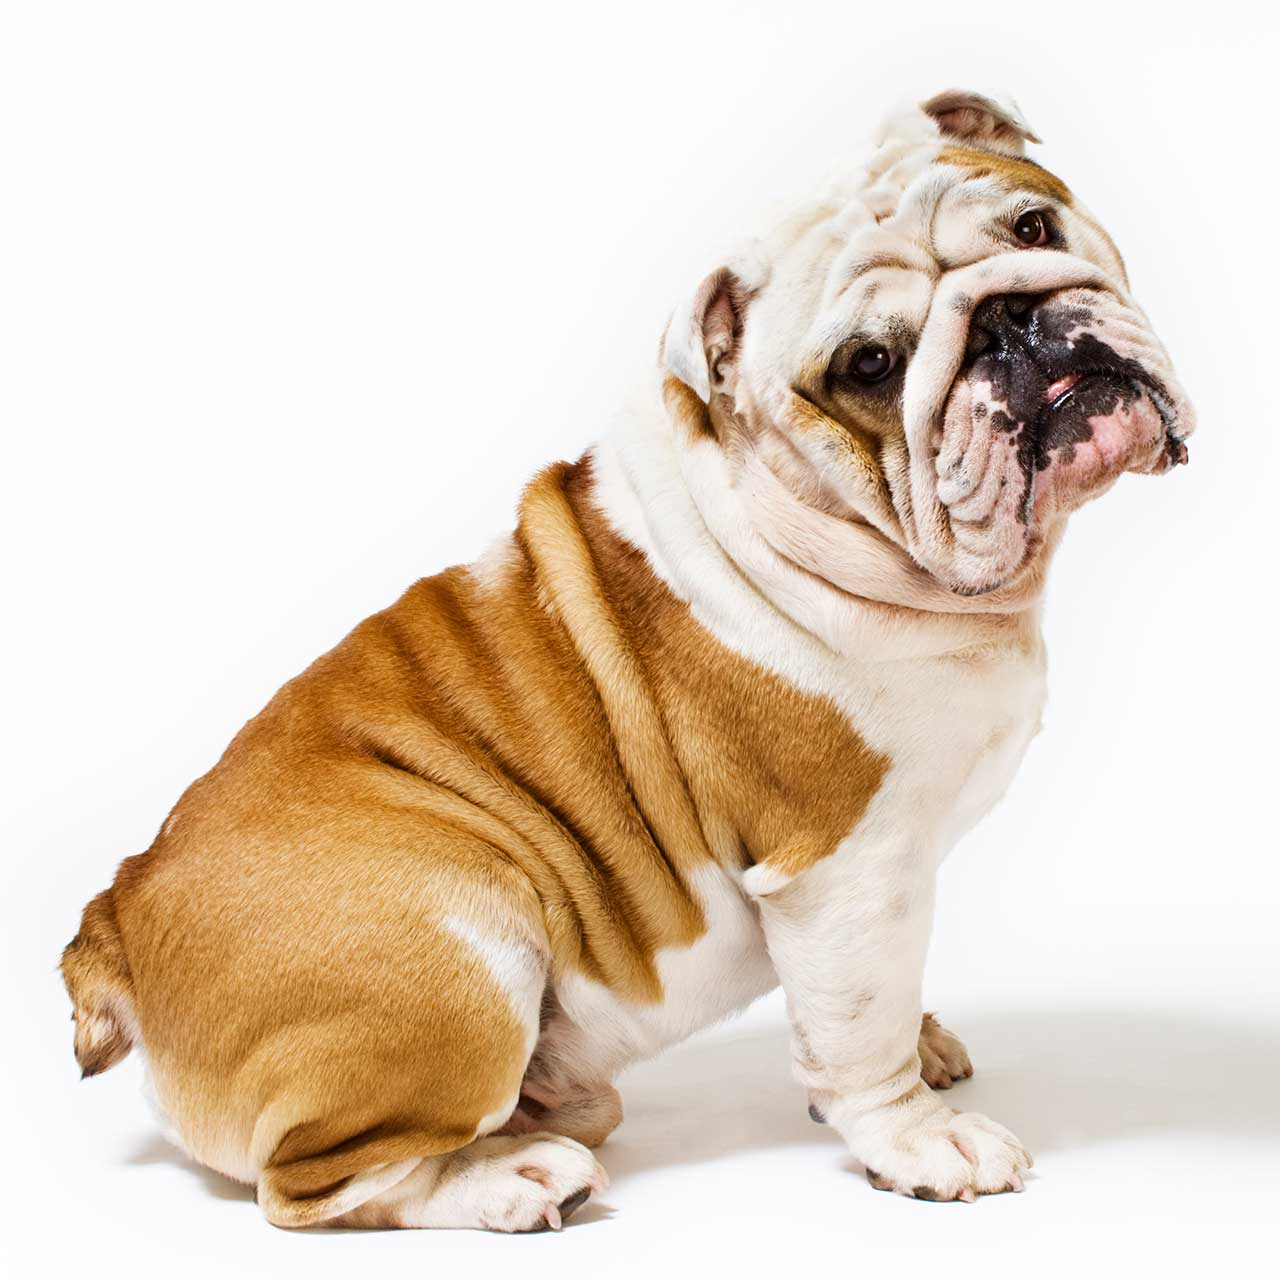 Bulldog Dog Breed 187 Information Pictures Amp More